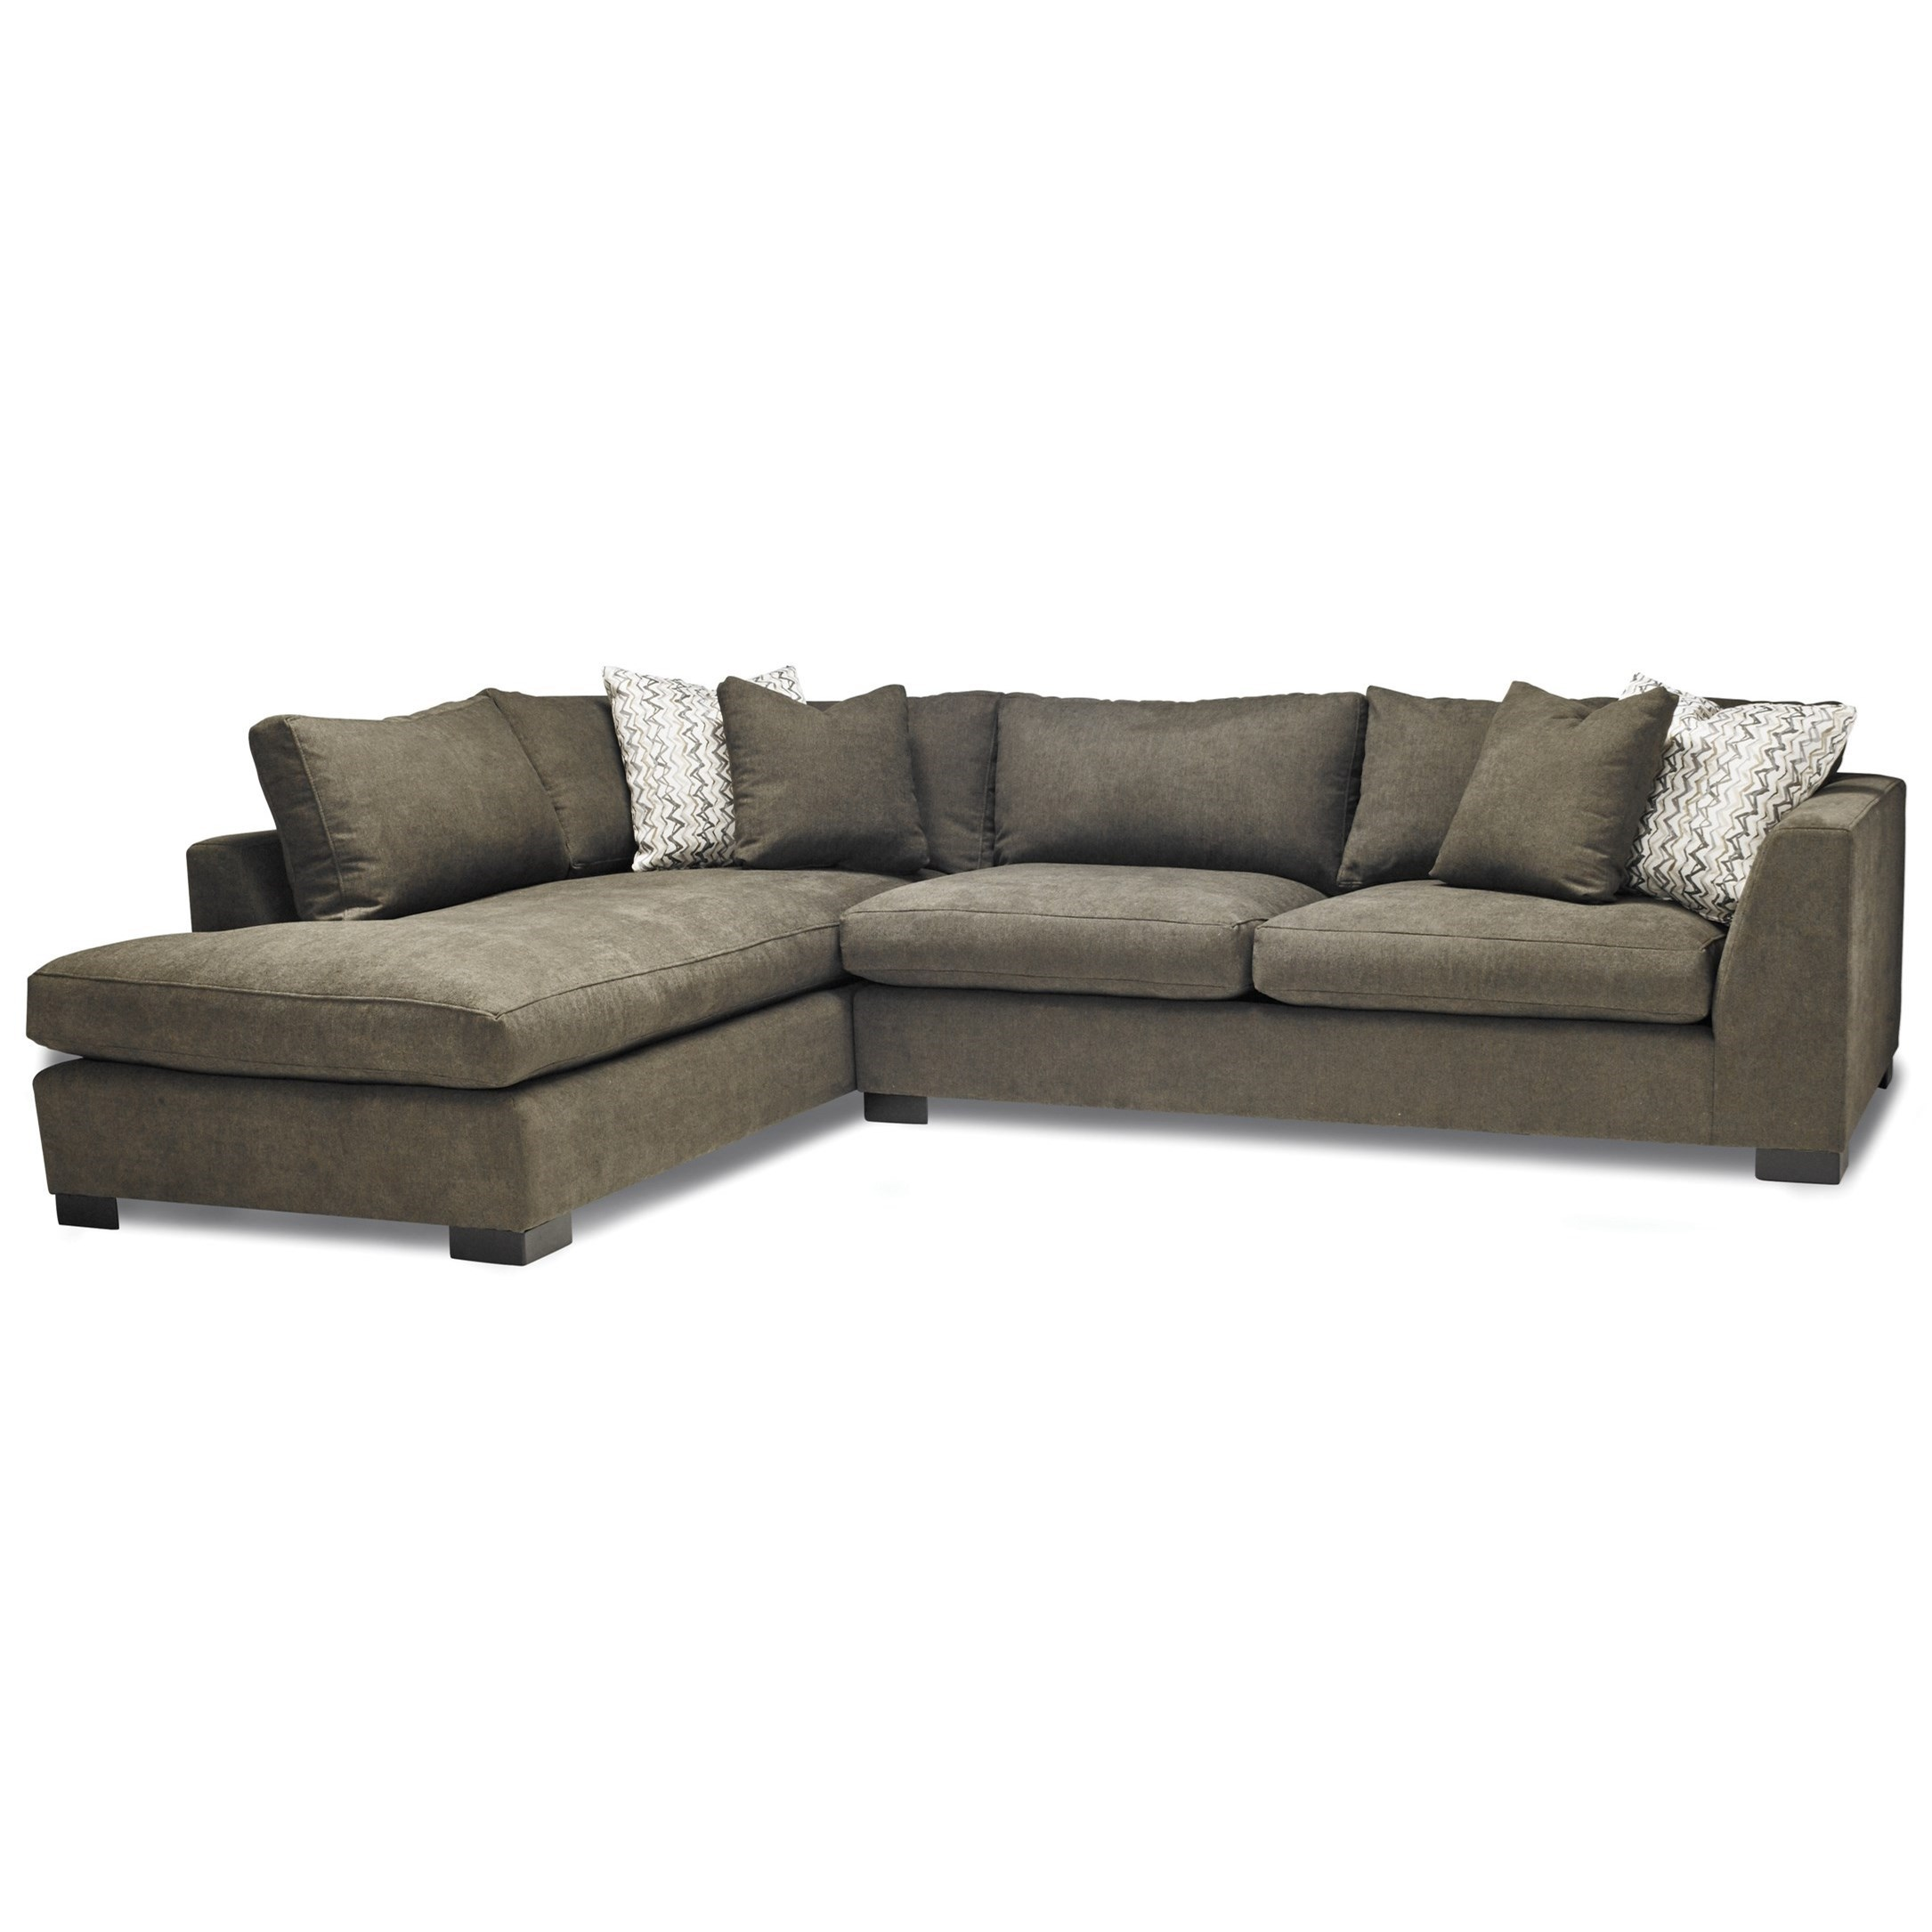 Chaise Pc 2099 Casual Two Piece Sectional Sofa With Laf Chaise By Stylus At Stoney Creek Furniture